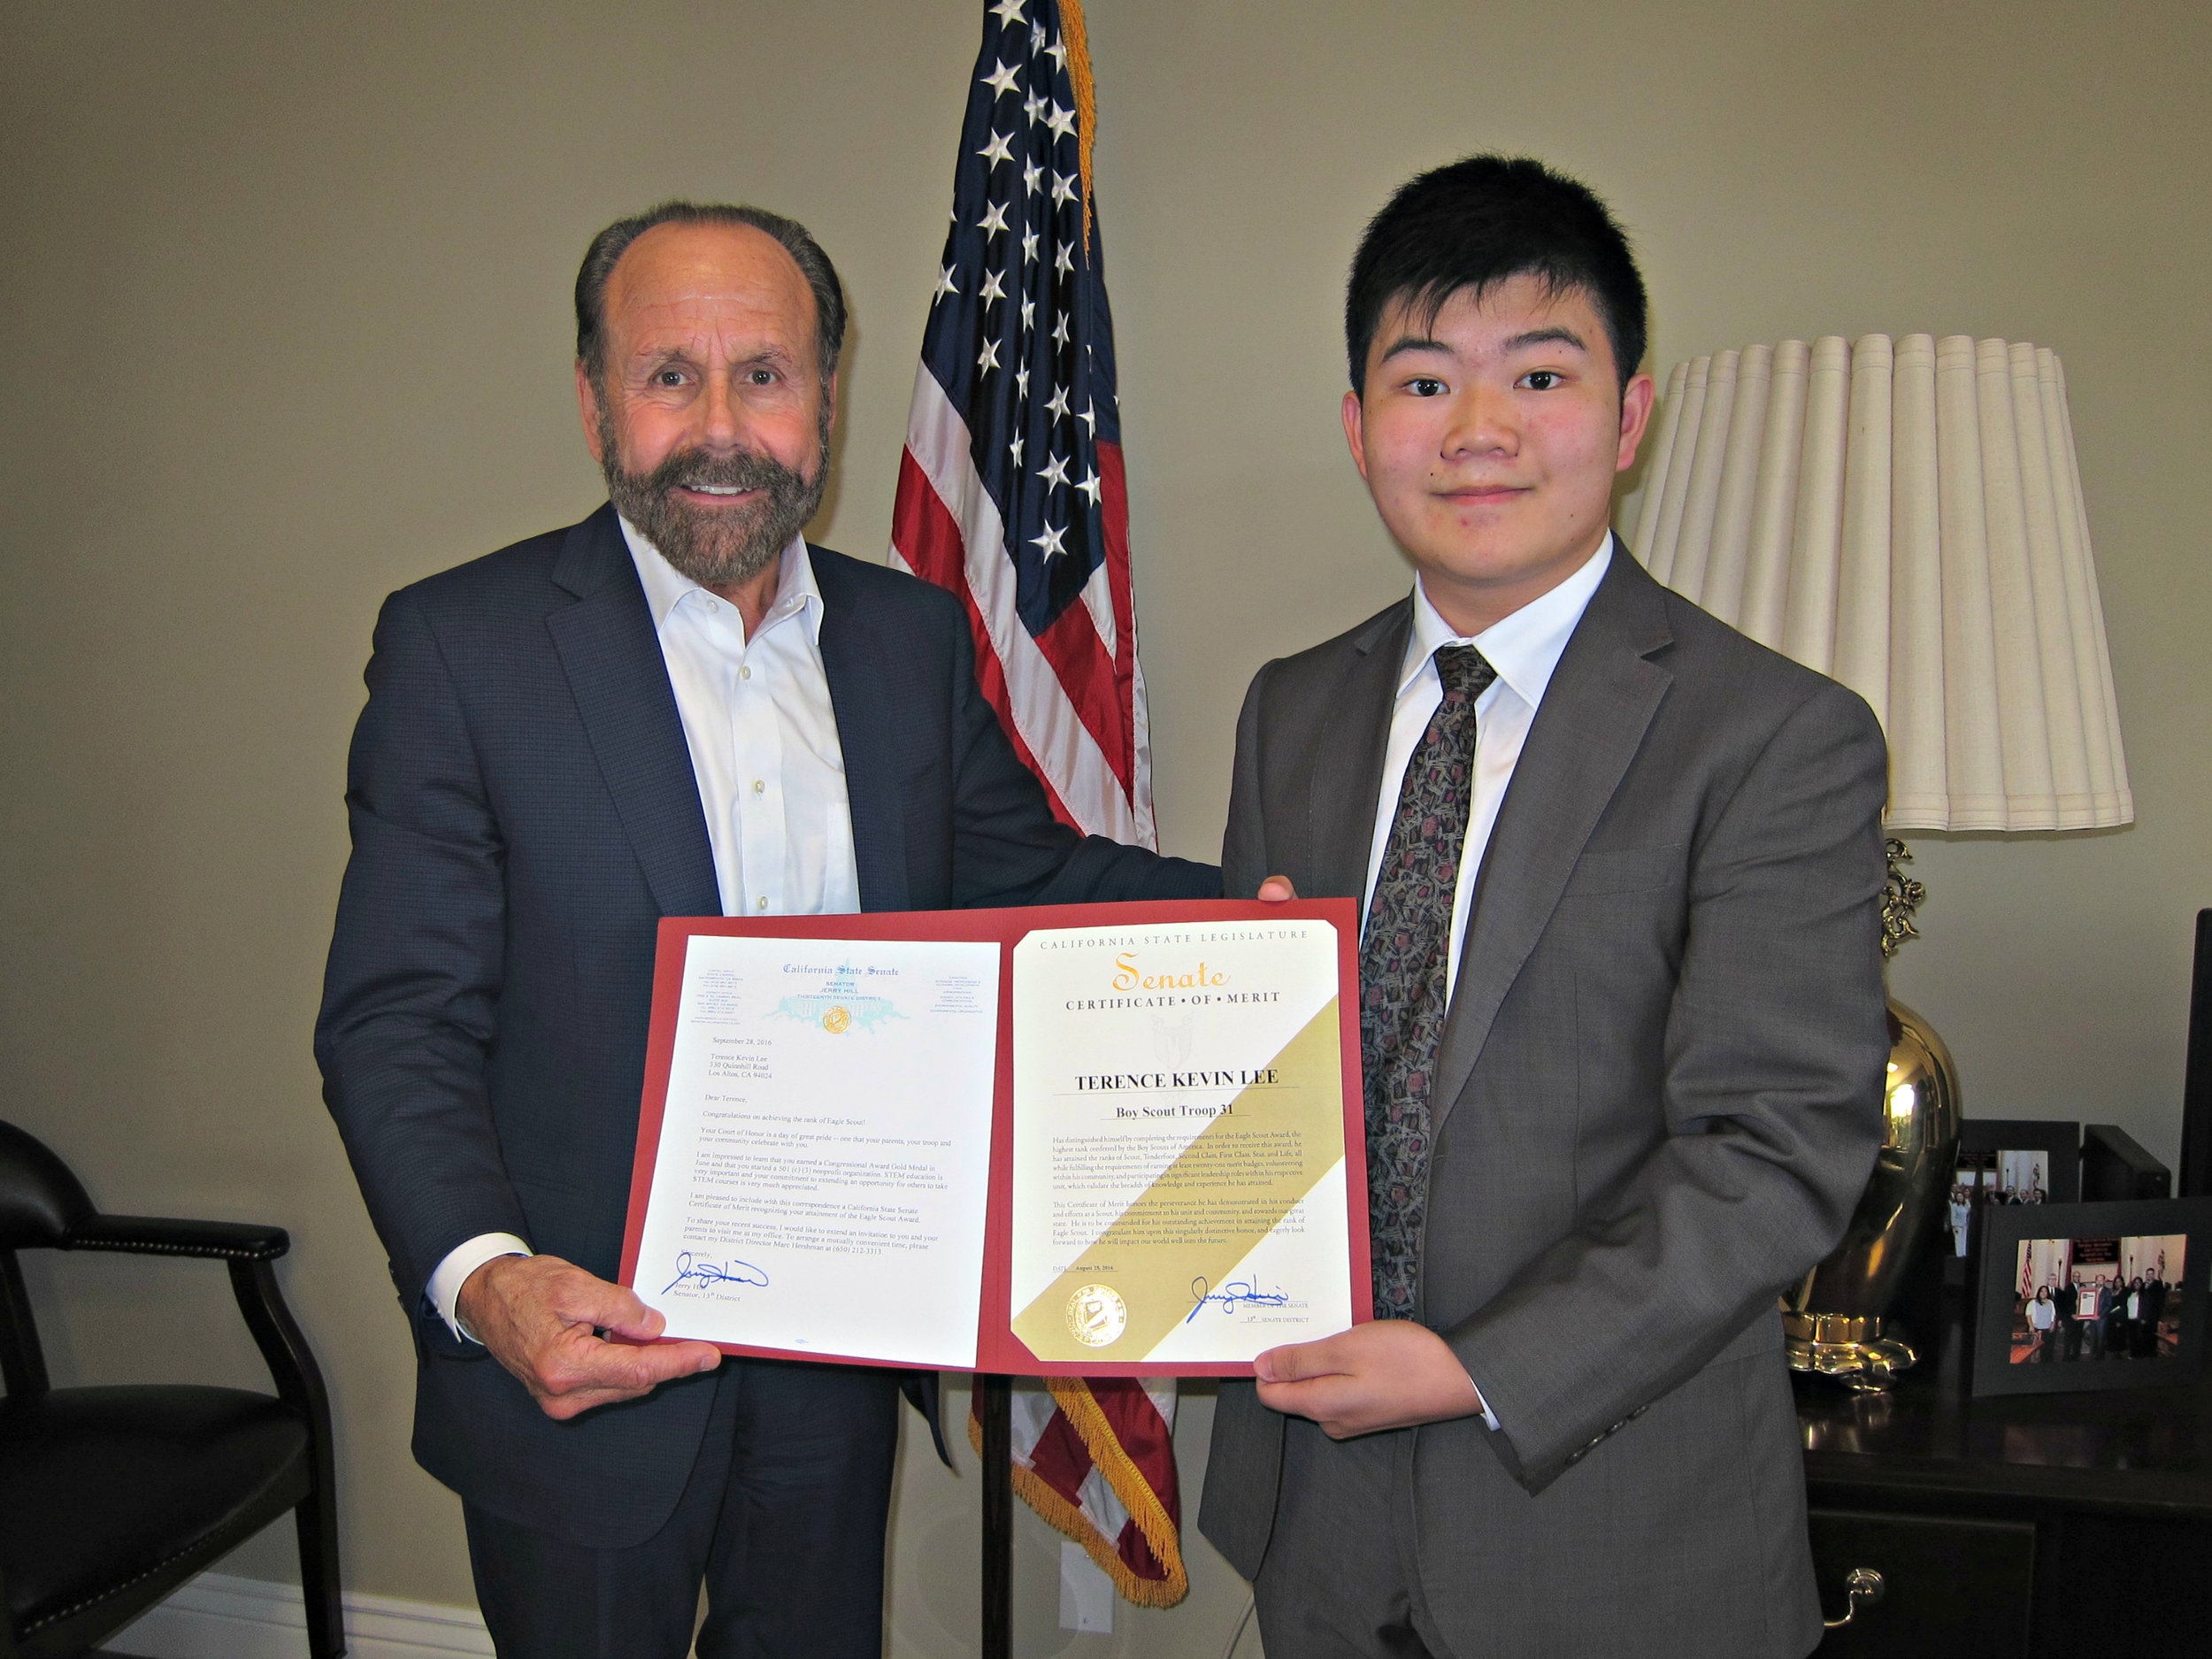 Senator Jerry Hill (left) presenting Certificate of Achievement to Eagle Scout Terence Lee (right)